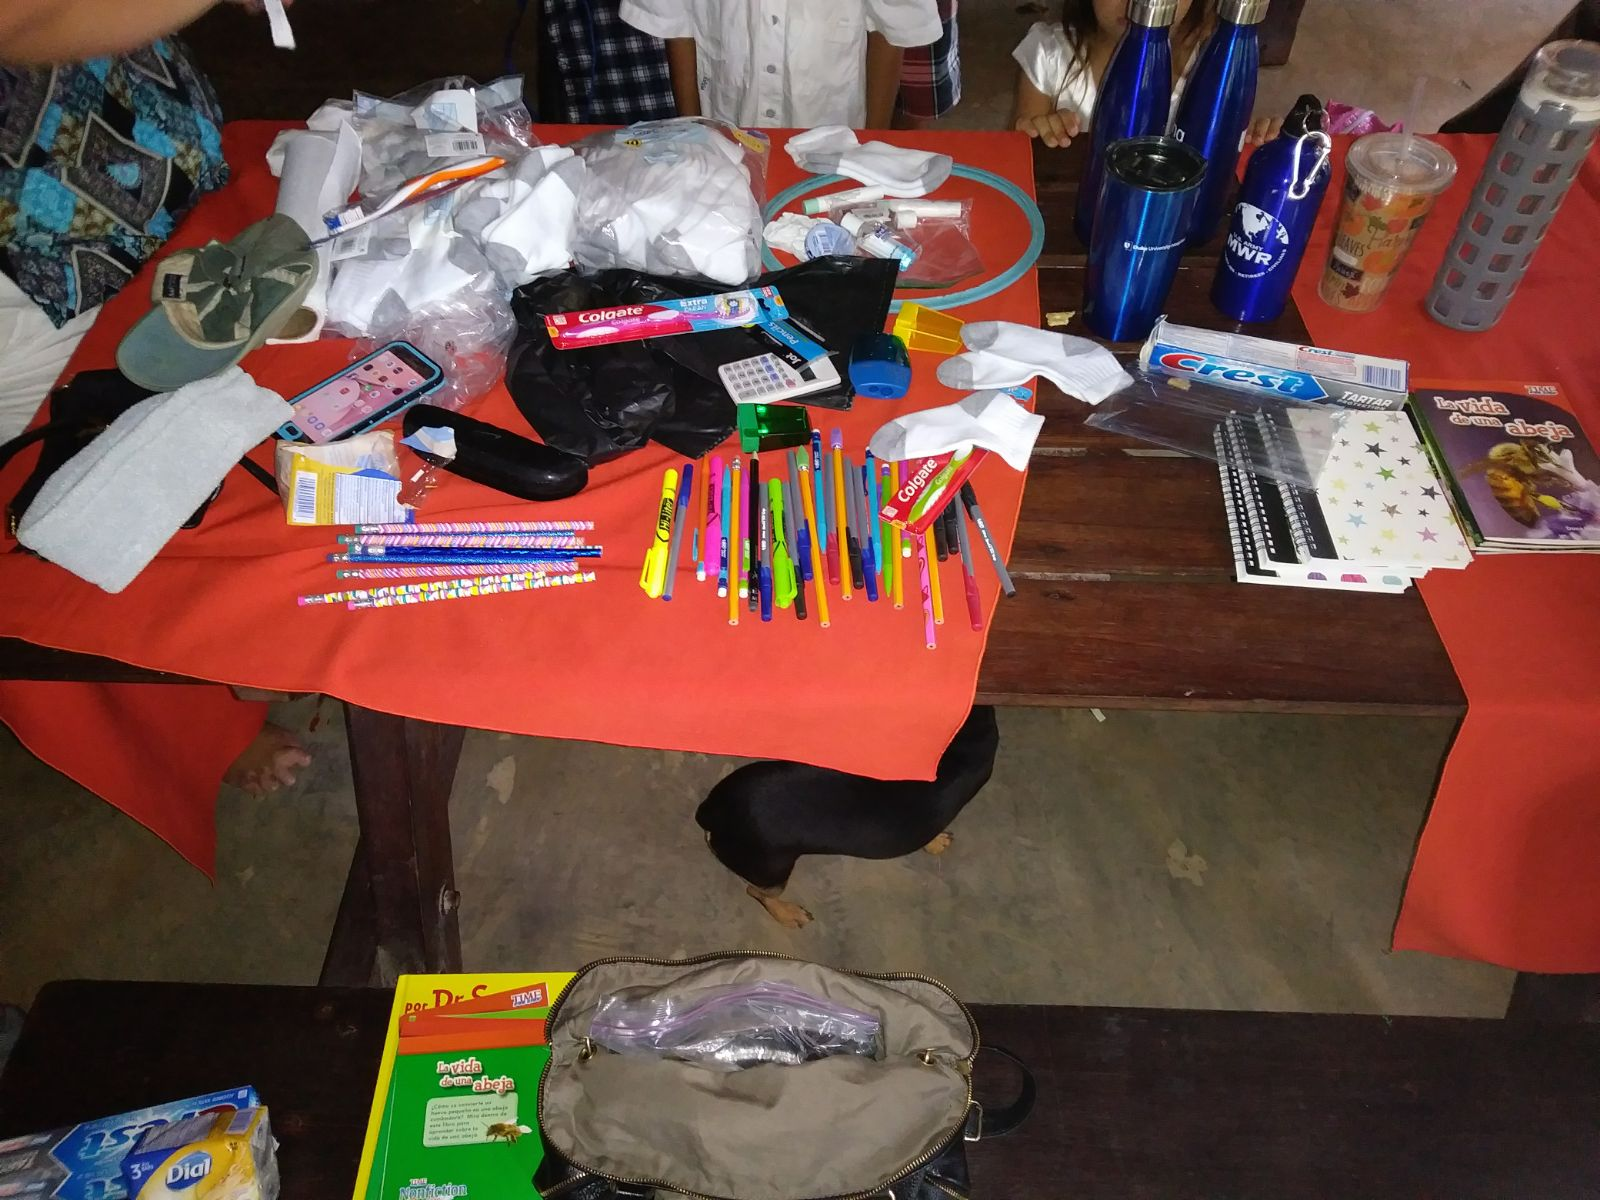 Donated school supplies from LiveGlobally 2017 for drake bay enrichment program in Costa Rica